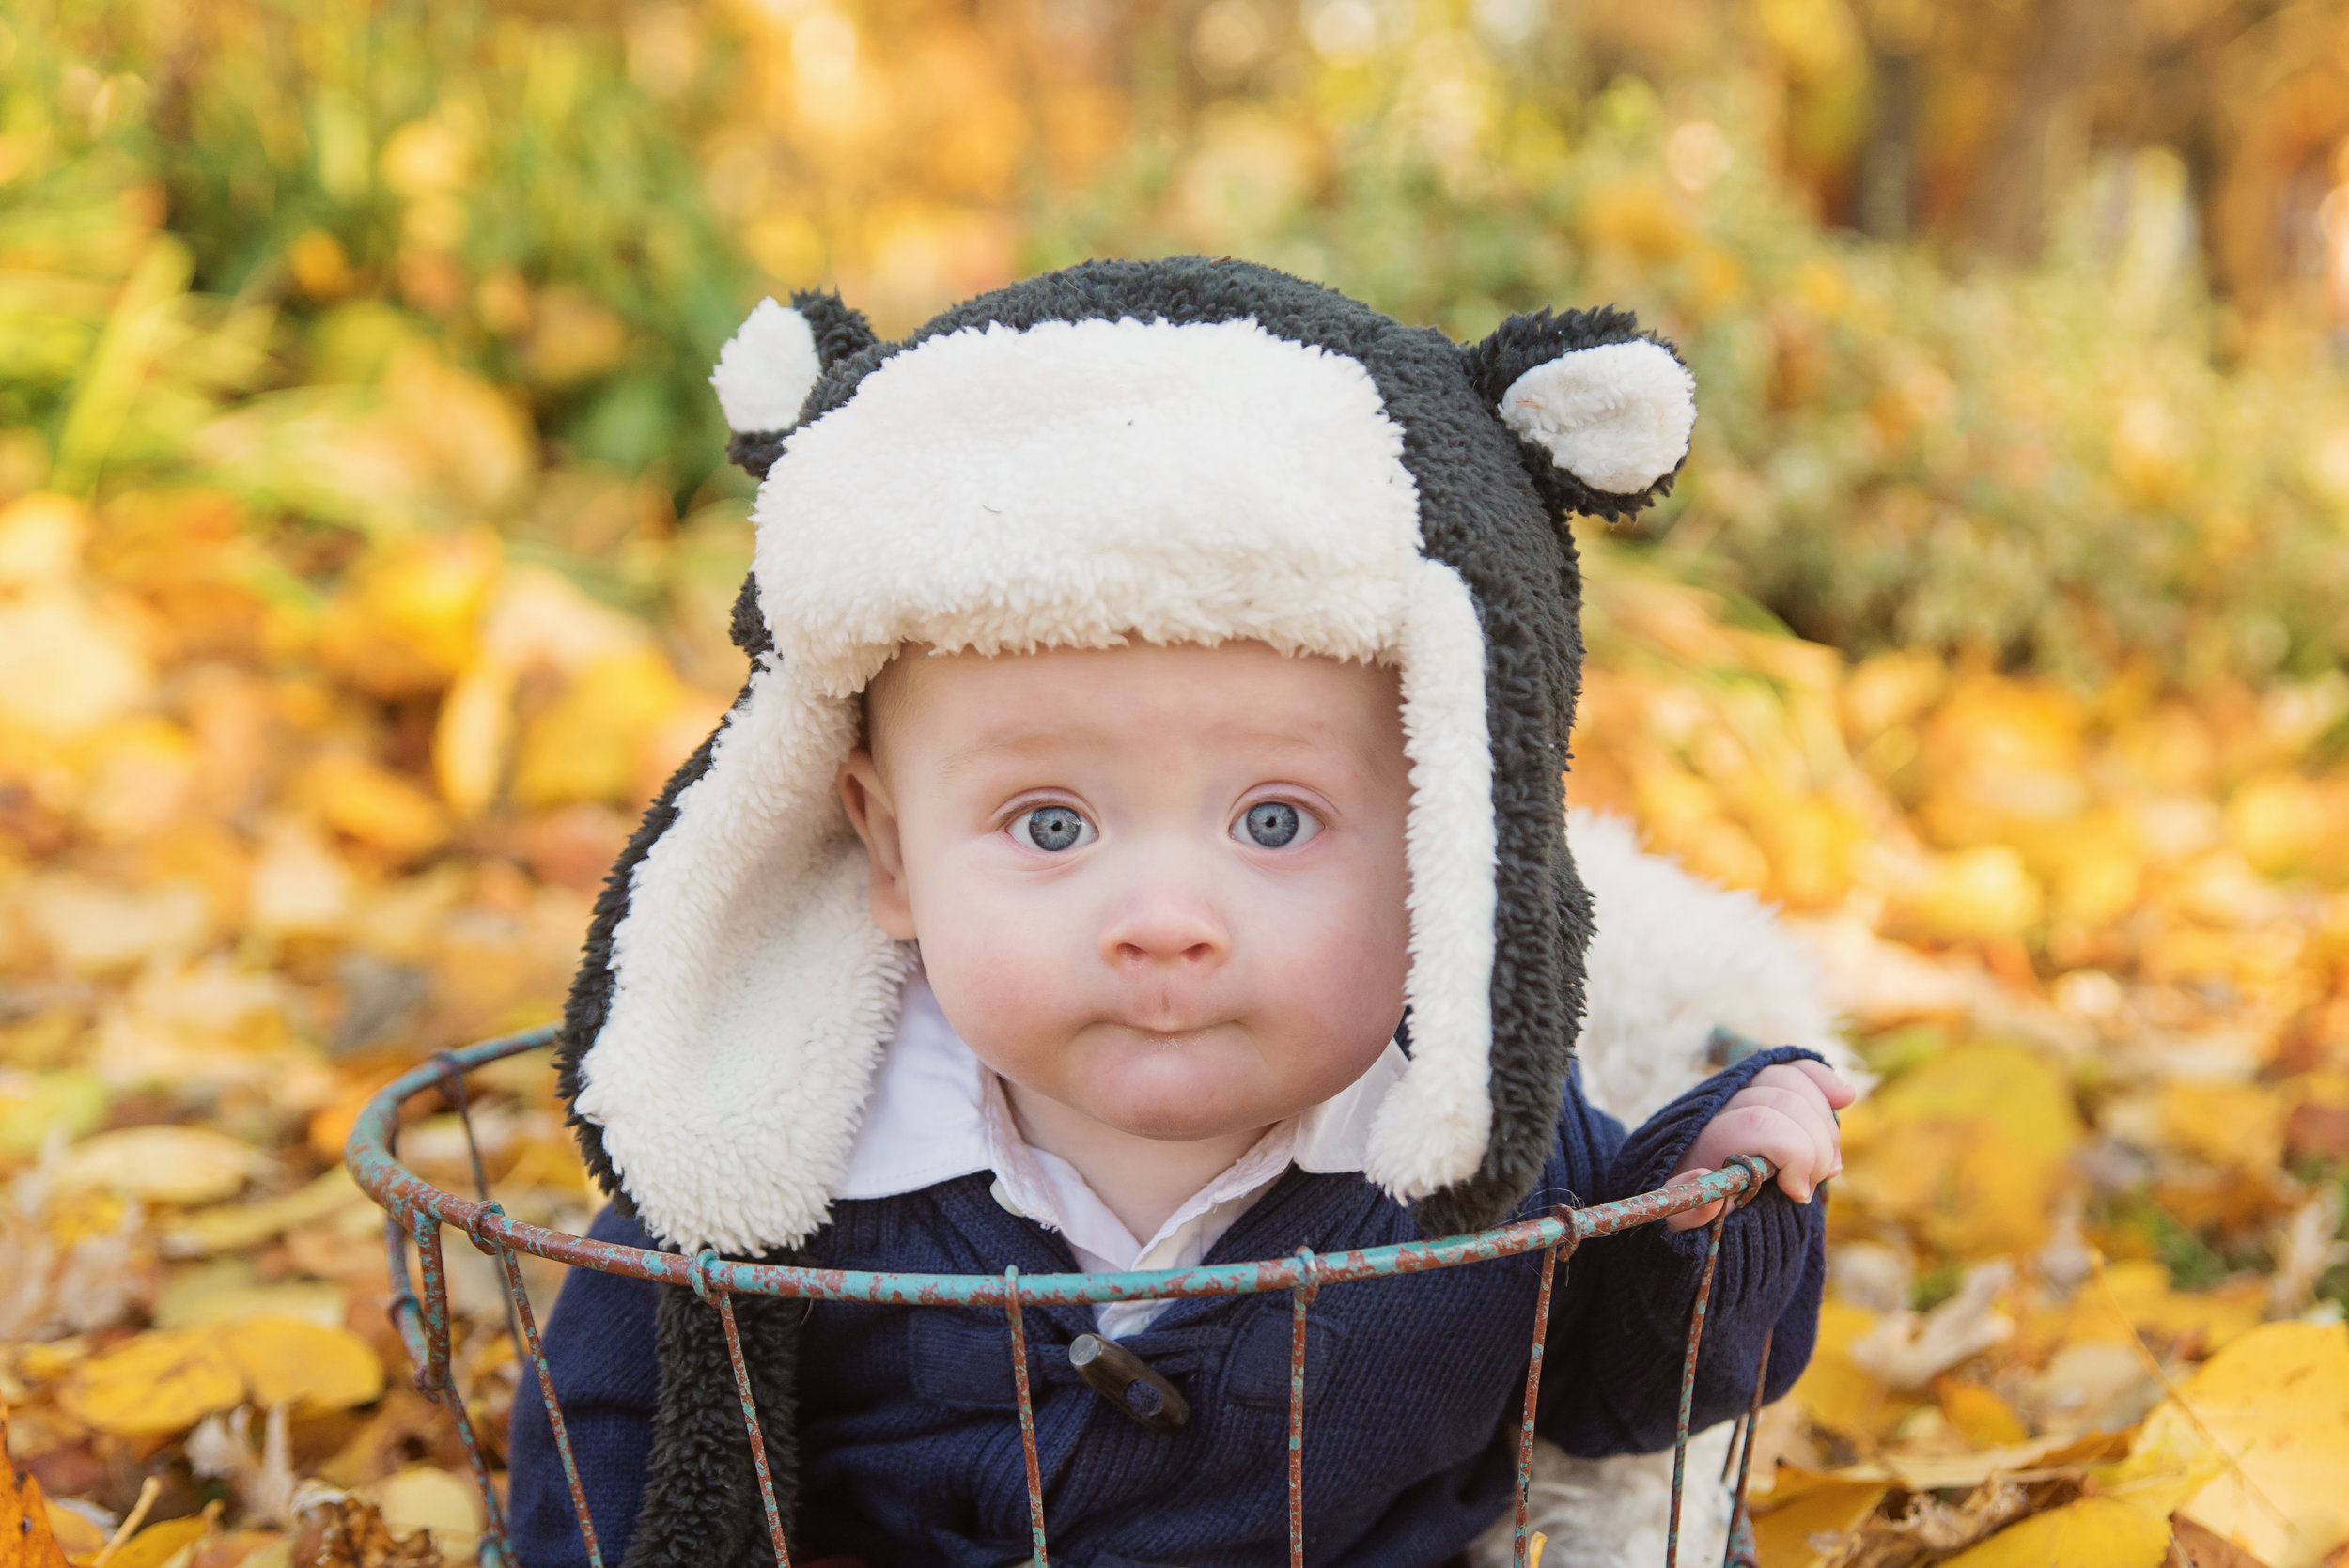 st-louis-fall-mini-sessions-2018-family-photographer-baby-in-basket-in-fall-leaves-with-winter-bear-hat.jpg